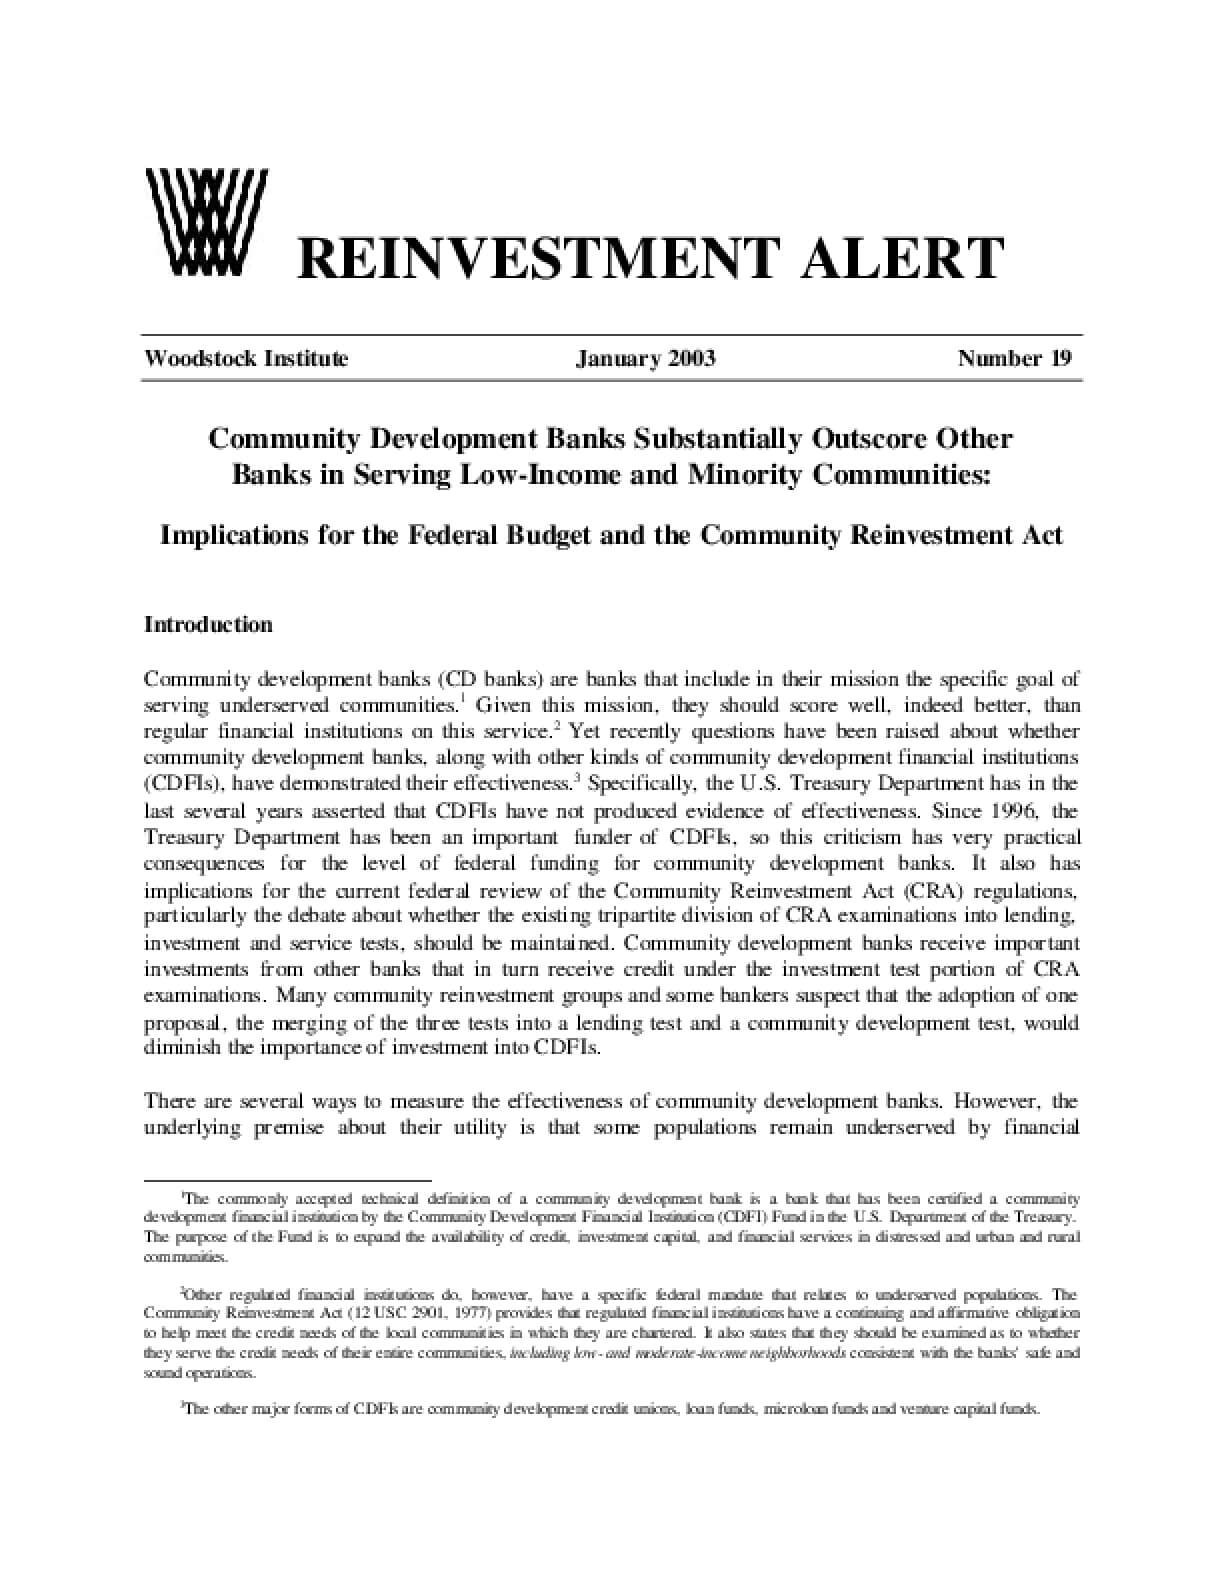 Reinvestment Alert 19: Community Development Banks Substantially Outscore Other Banks in Serving Low-Income and Minority Communities